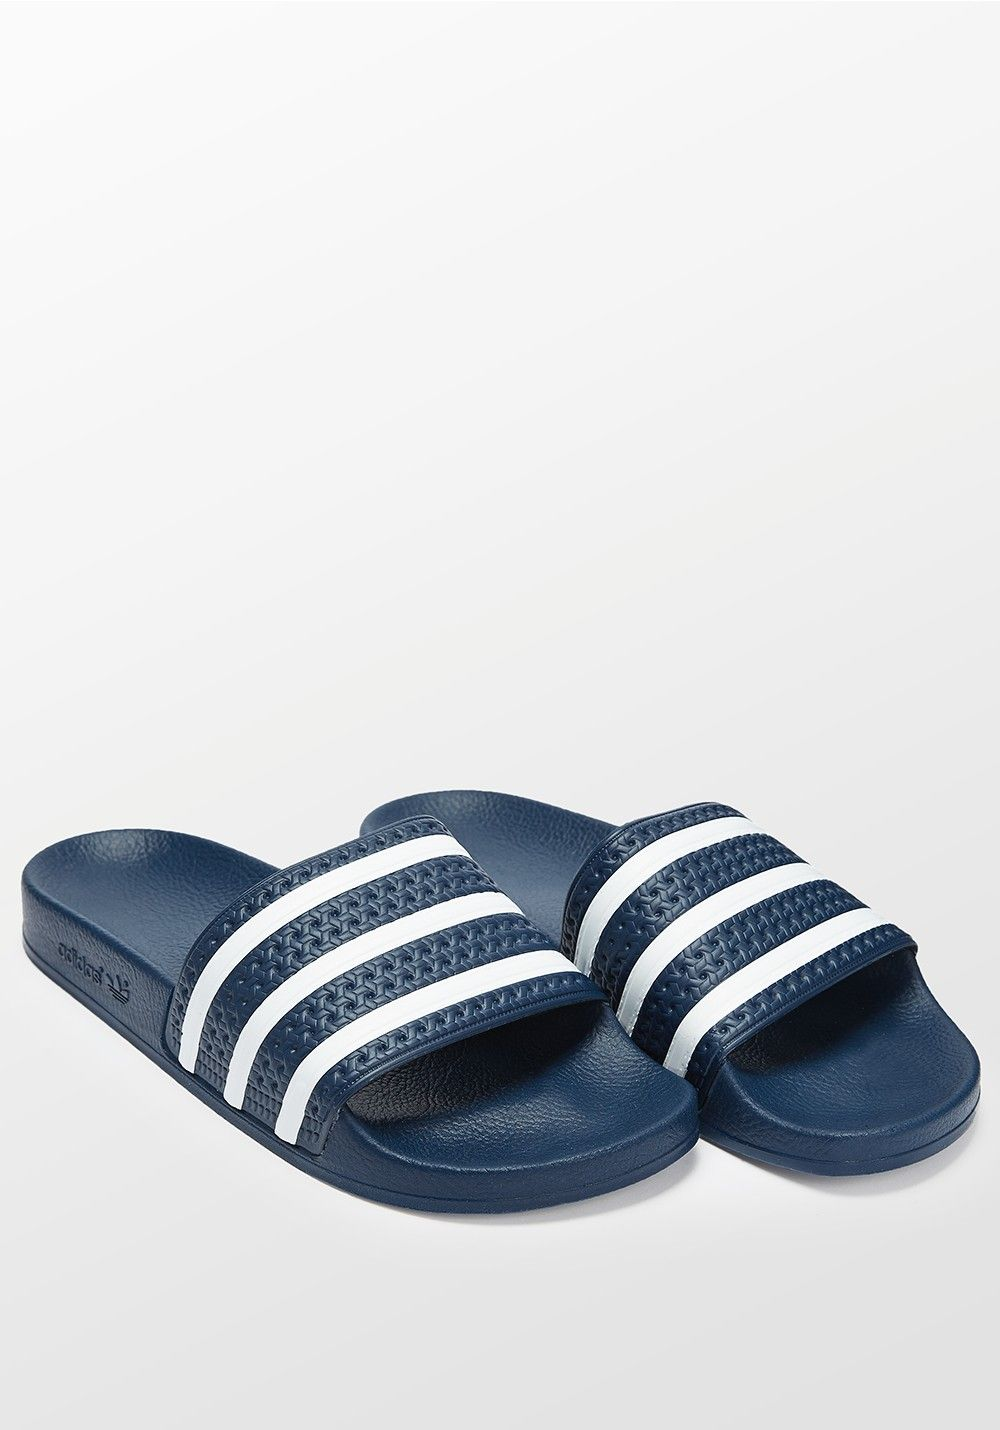 1bd190bde634 Adidas Adilette navy blue and white slides